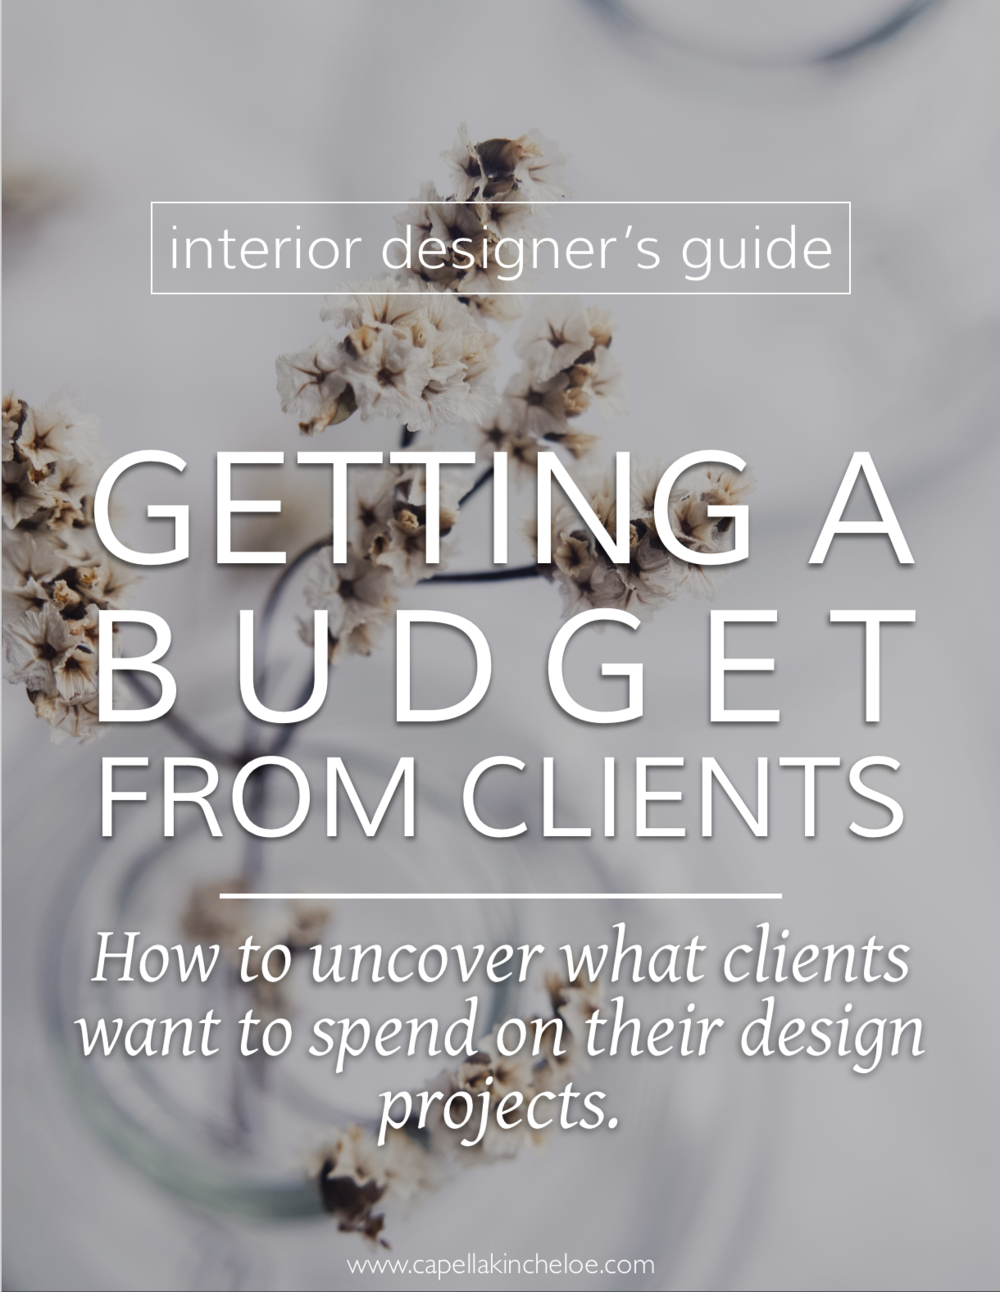 How to get a clear budget number from potential clients to avoid costly issues down the road.